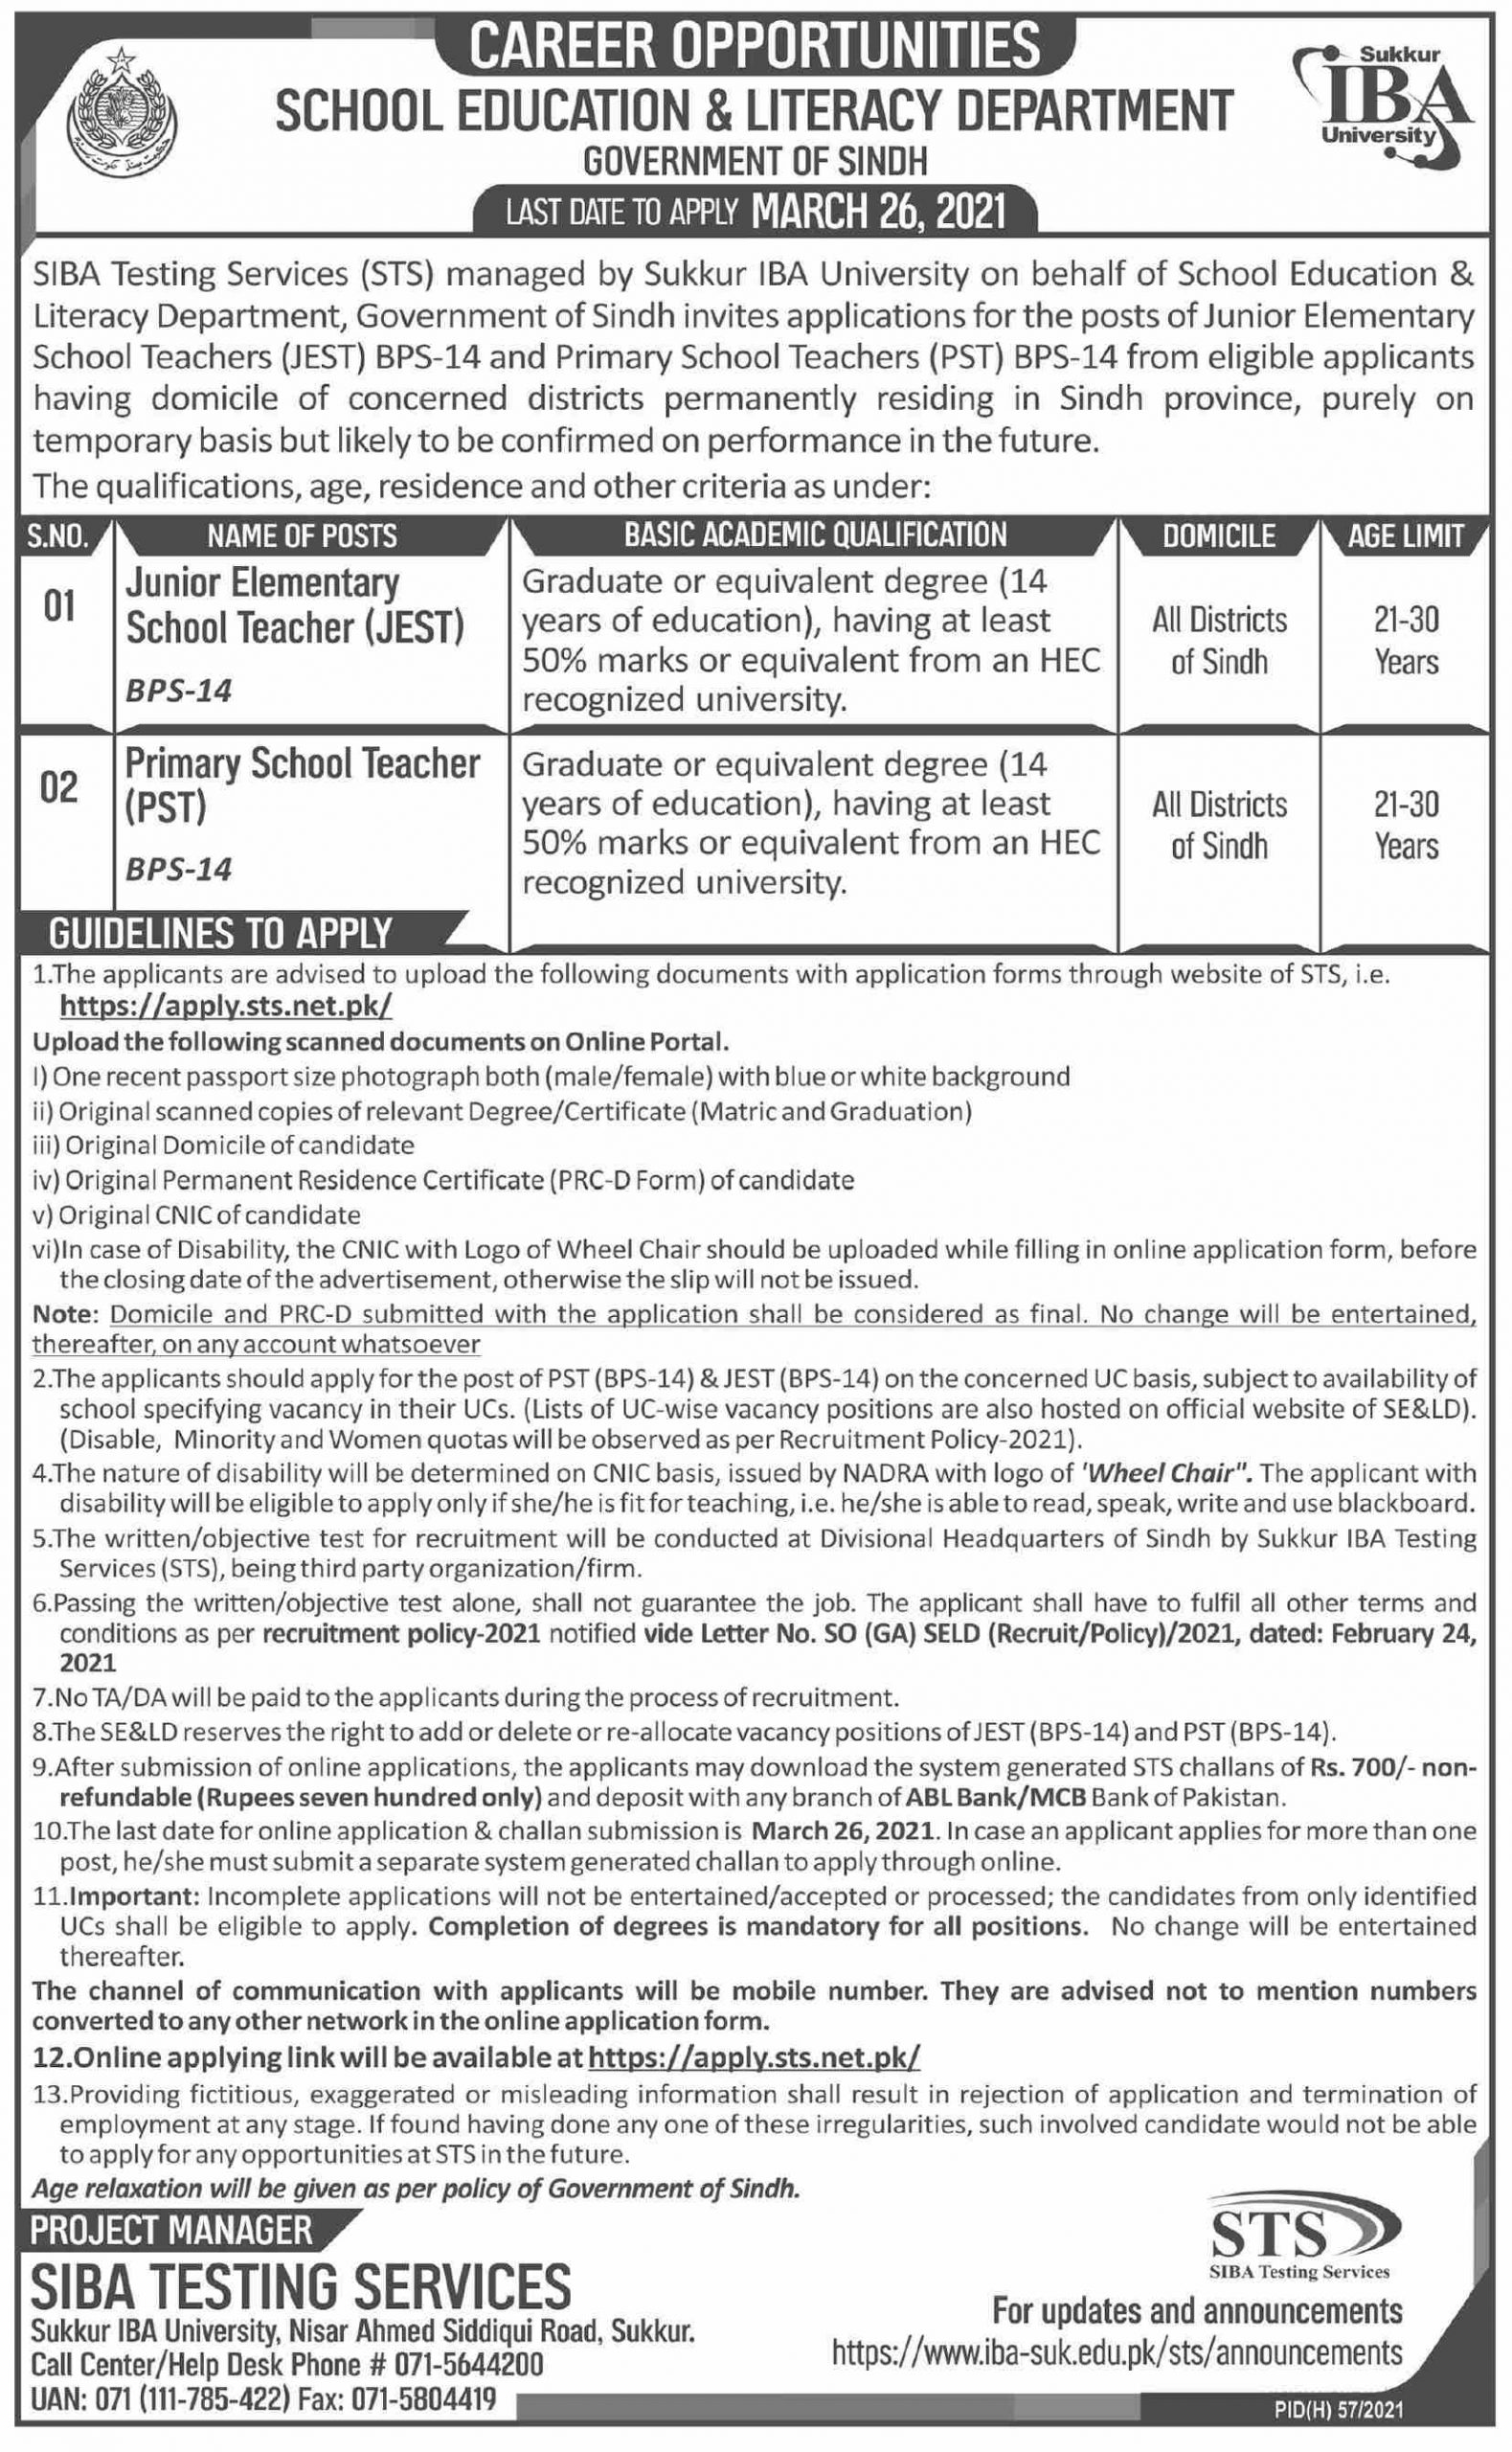 School Education & Literacy Department Jobs February 2021